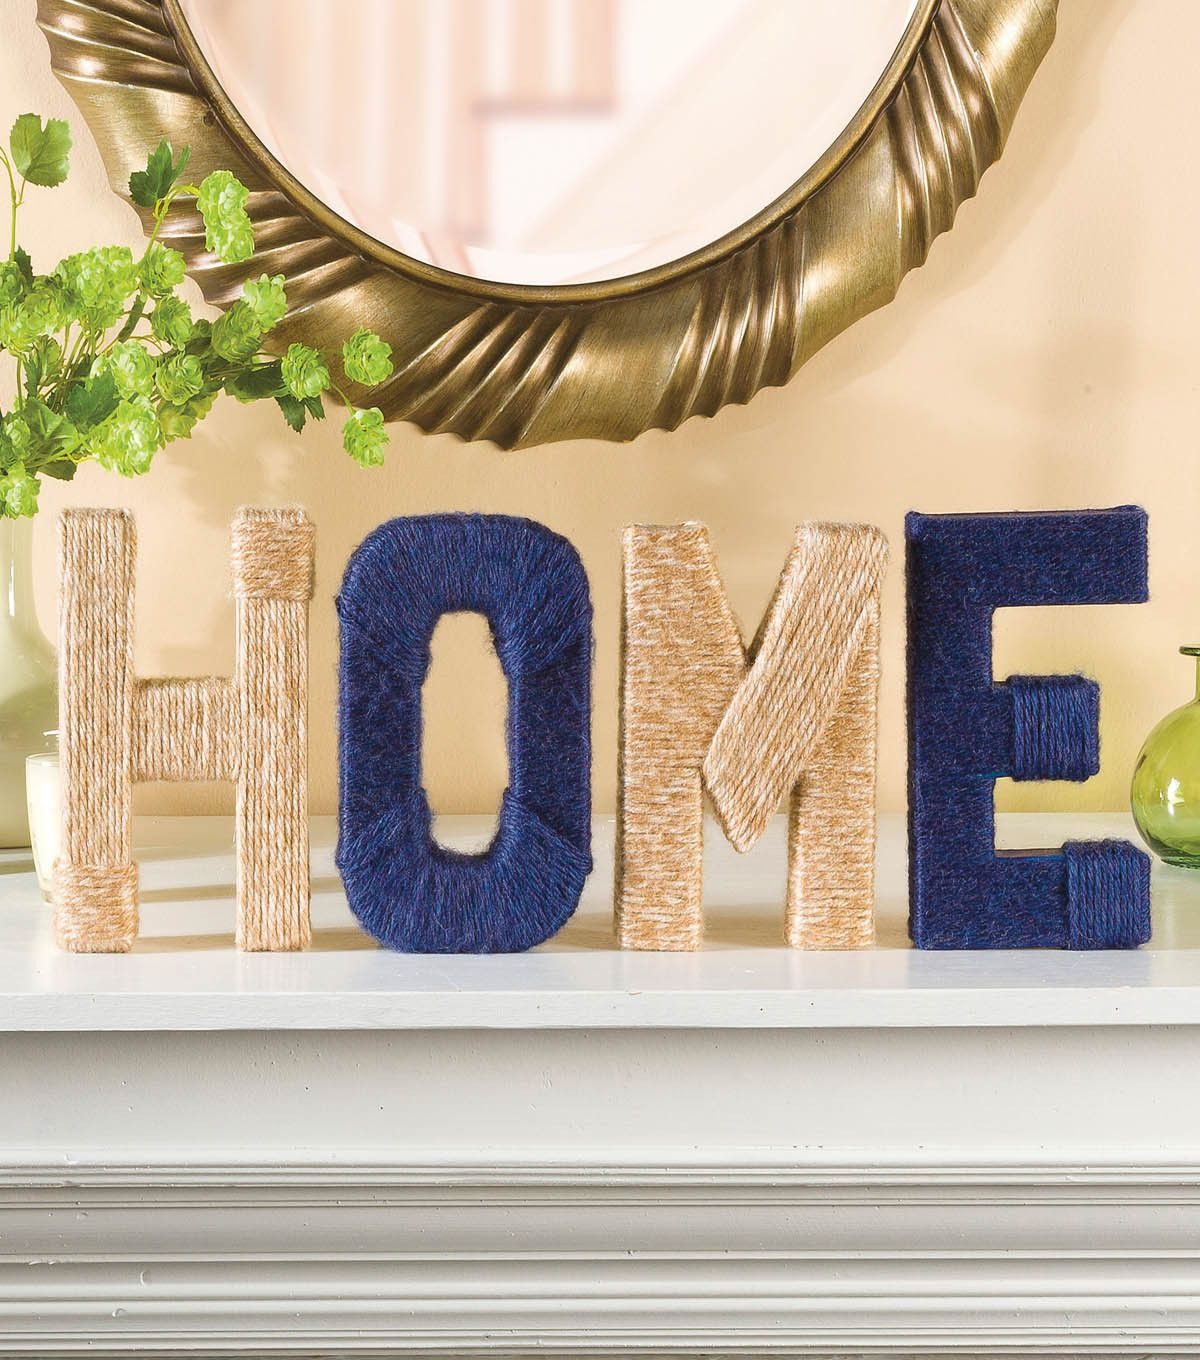 Create A Home Letter Decoration With Cardboard Letters And Yarn   Free  Instructions